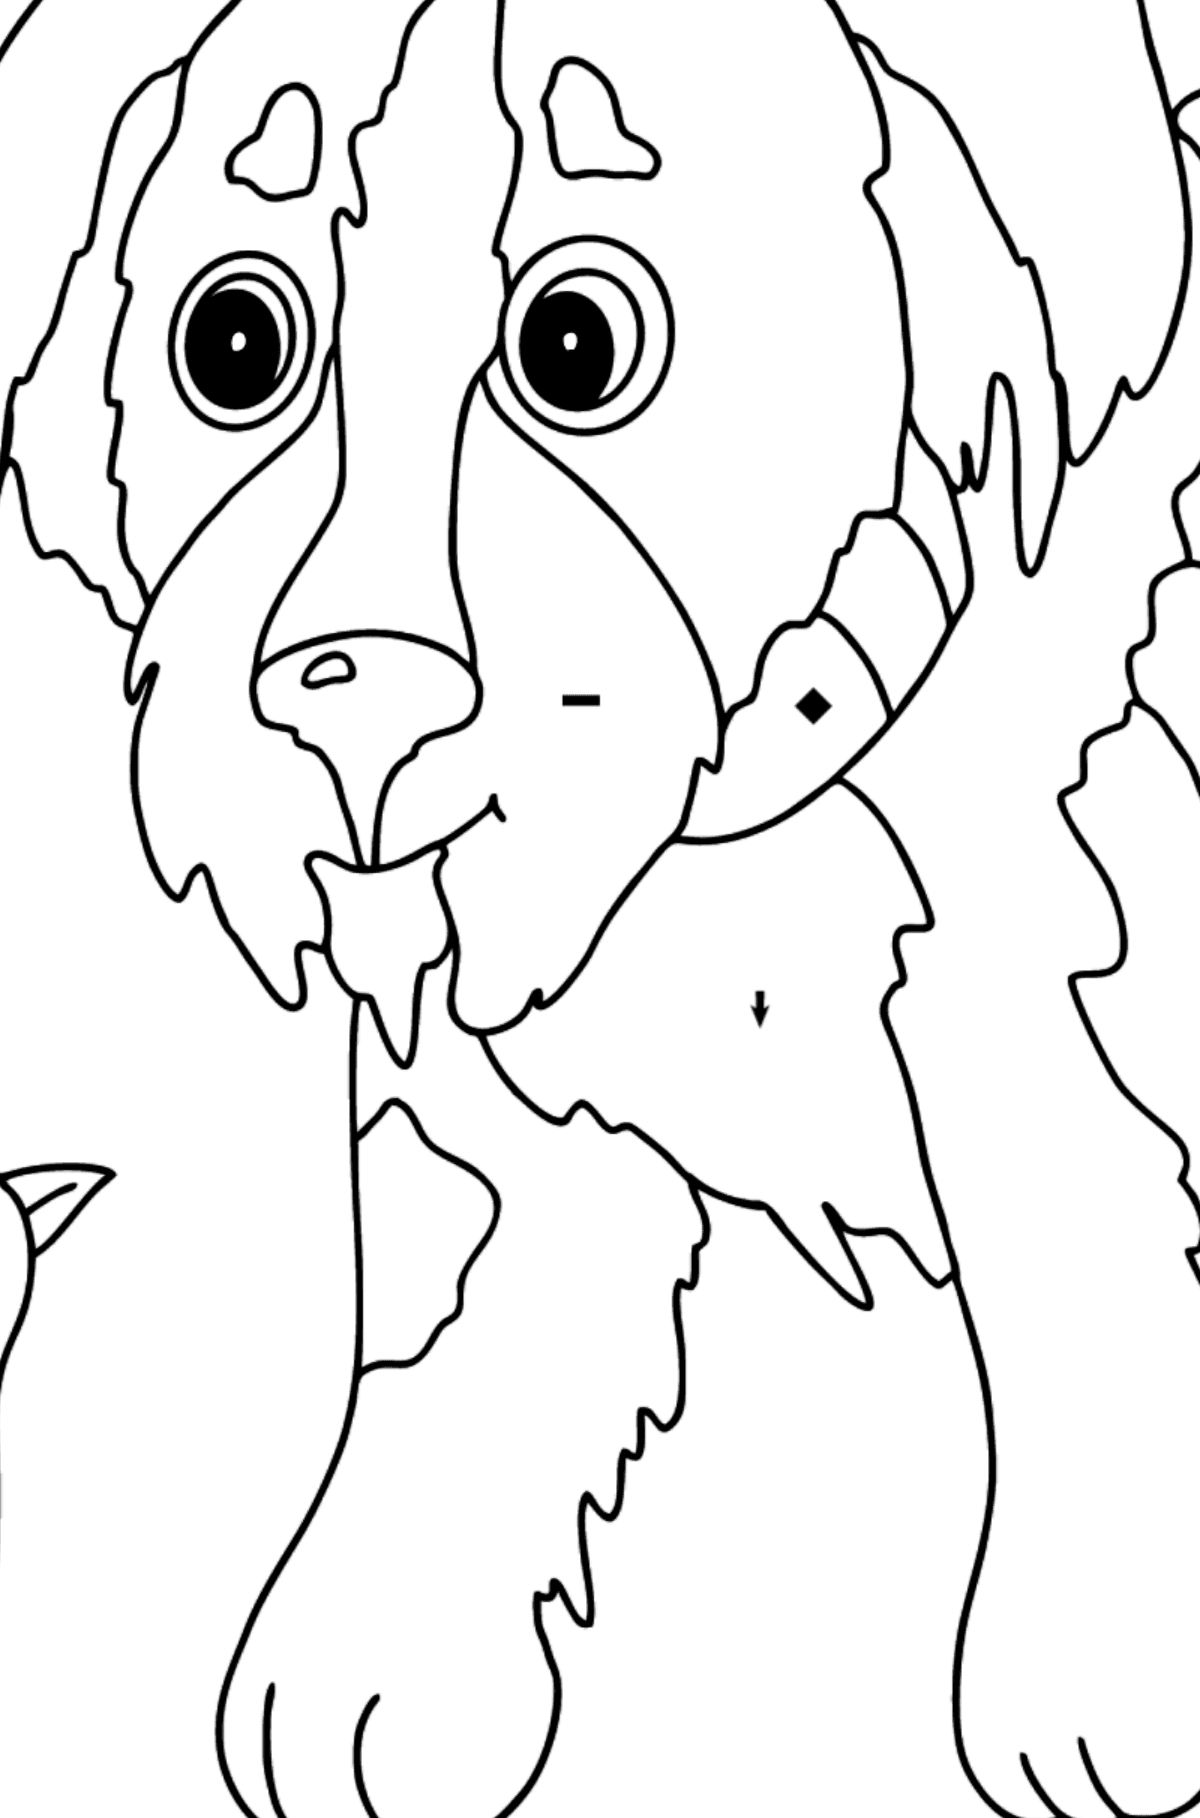 Coloring Page - A Dog is Talking to a Bird - Coloring by Symbols for Kids